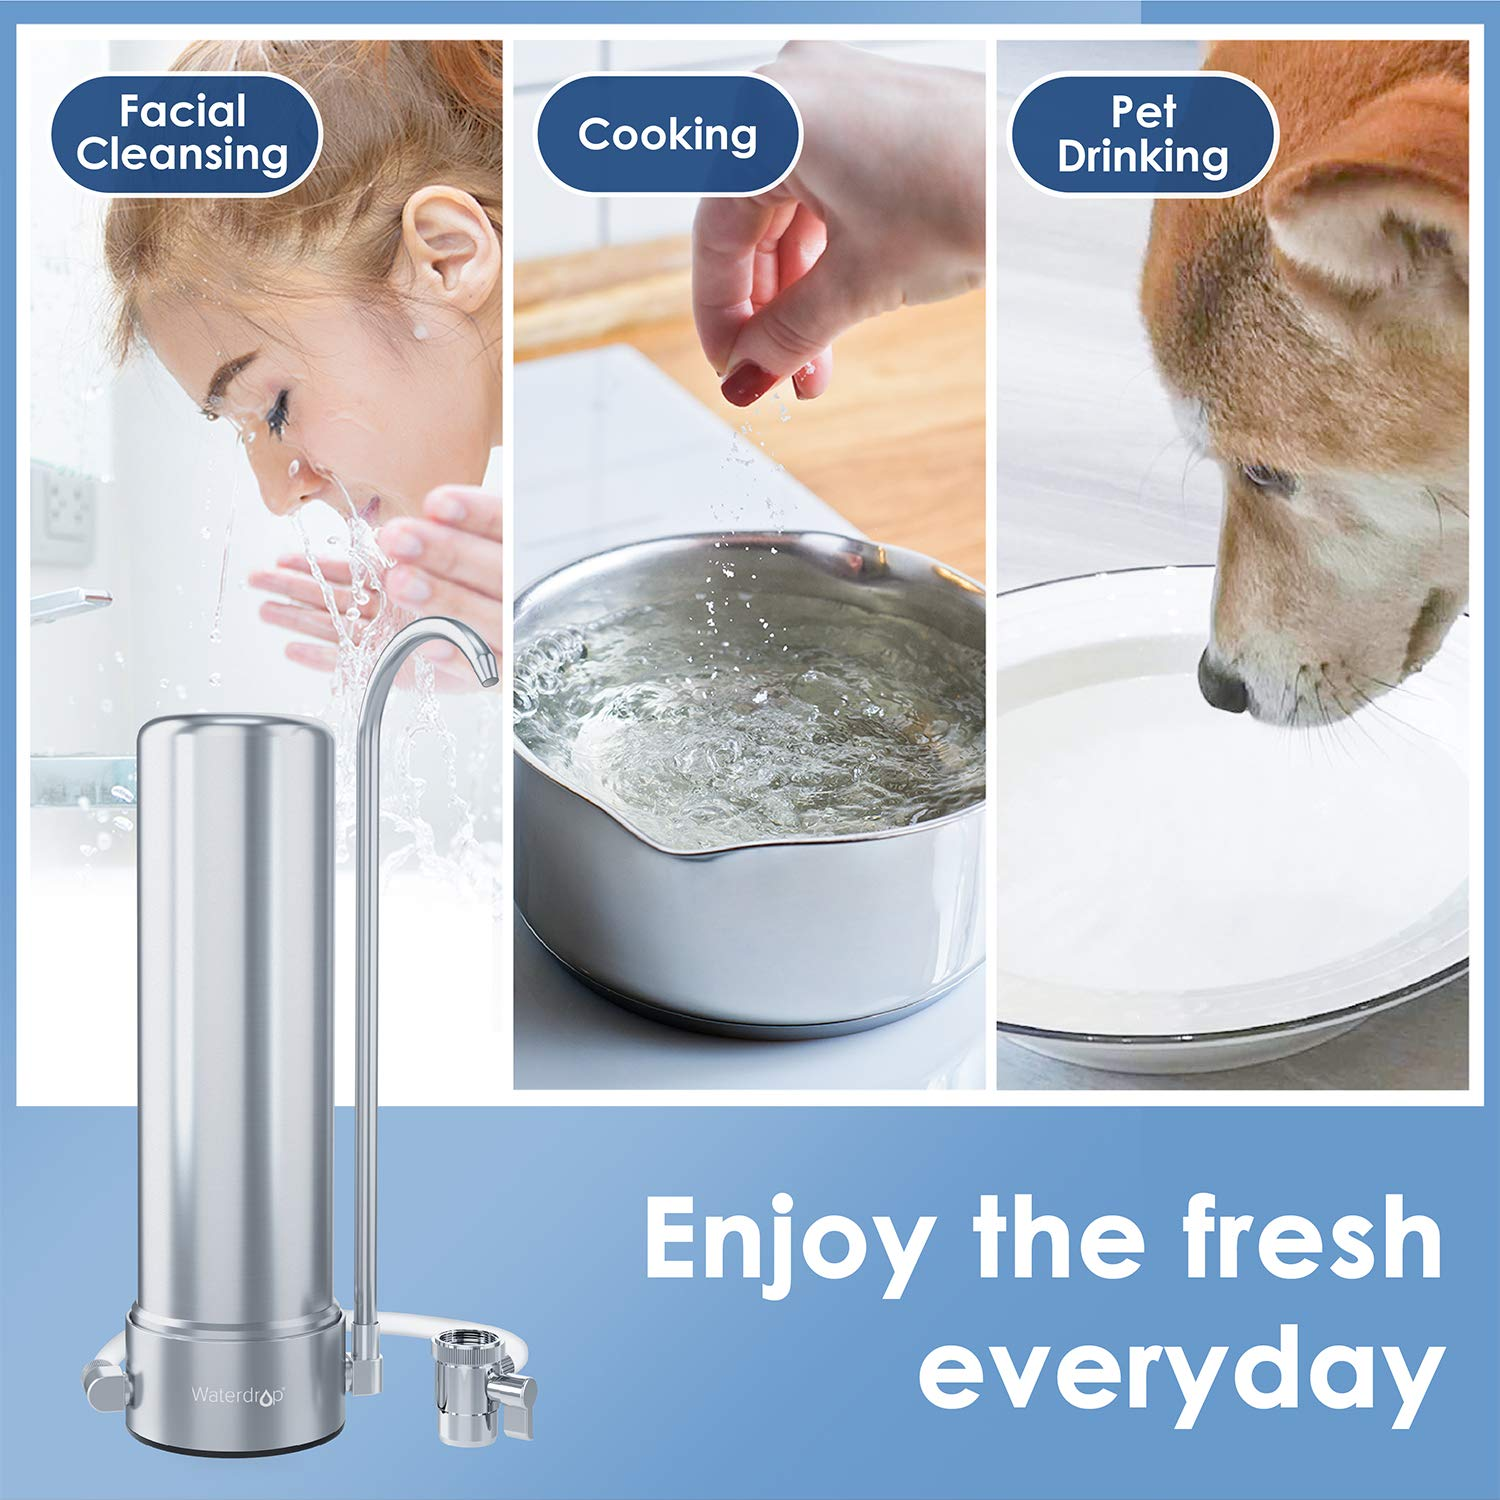 Heavy Metals Waterdrop WD-CTF-01 Tap Water Filter Purifier Long-Lasting Faucet Water Filter Bad Taste 1 Filter Included Reduce Chlorine 5-Stage Stainless Steel Countertop Filtration System